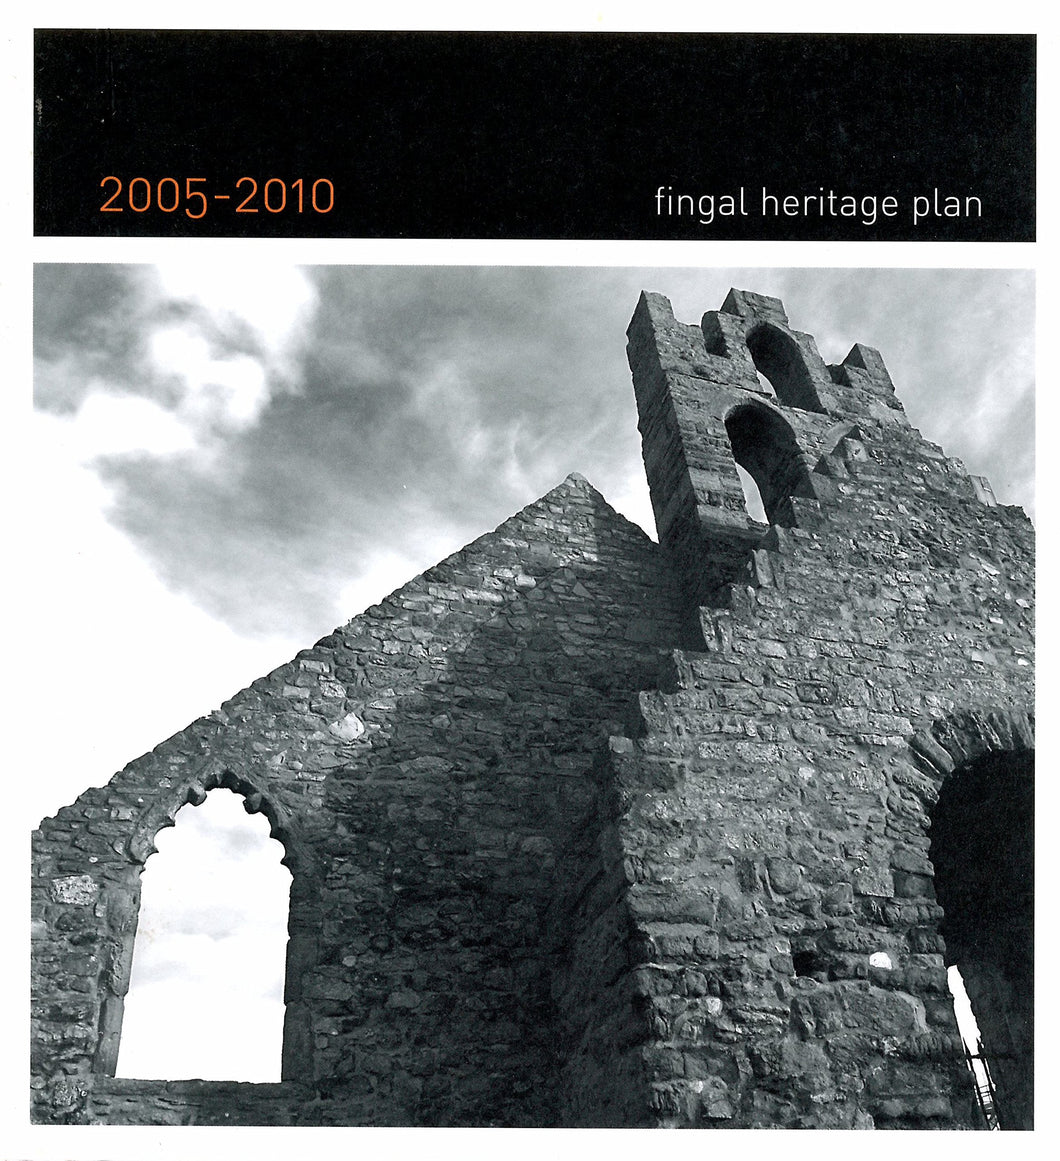 Fingal Heritage Plan 2005-2010